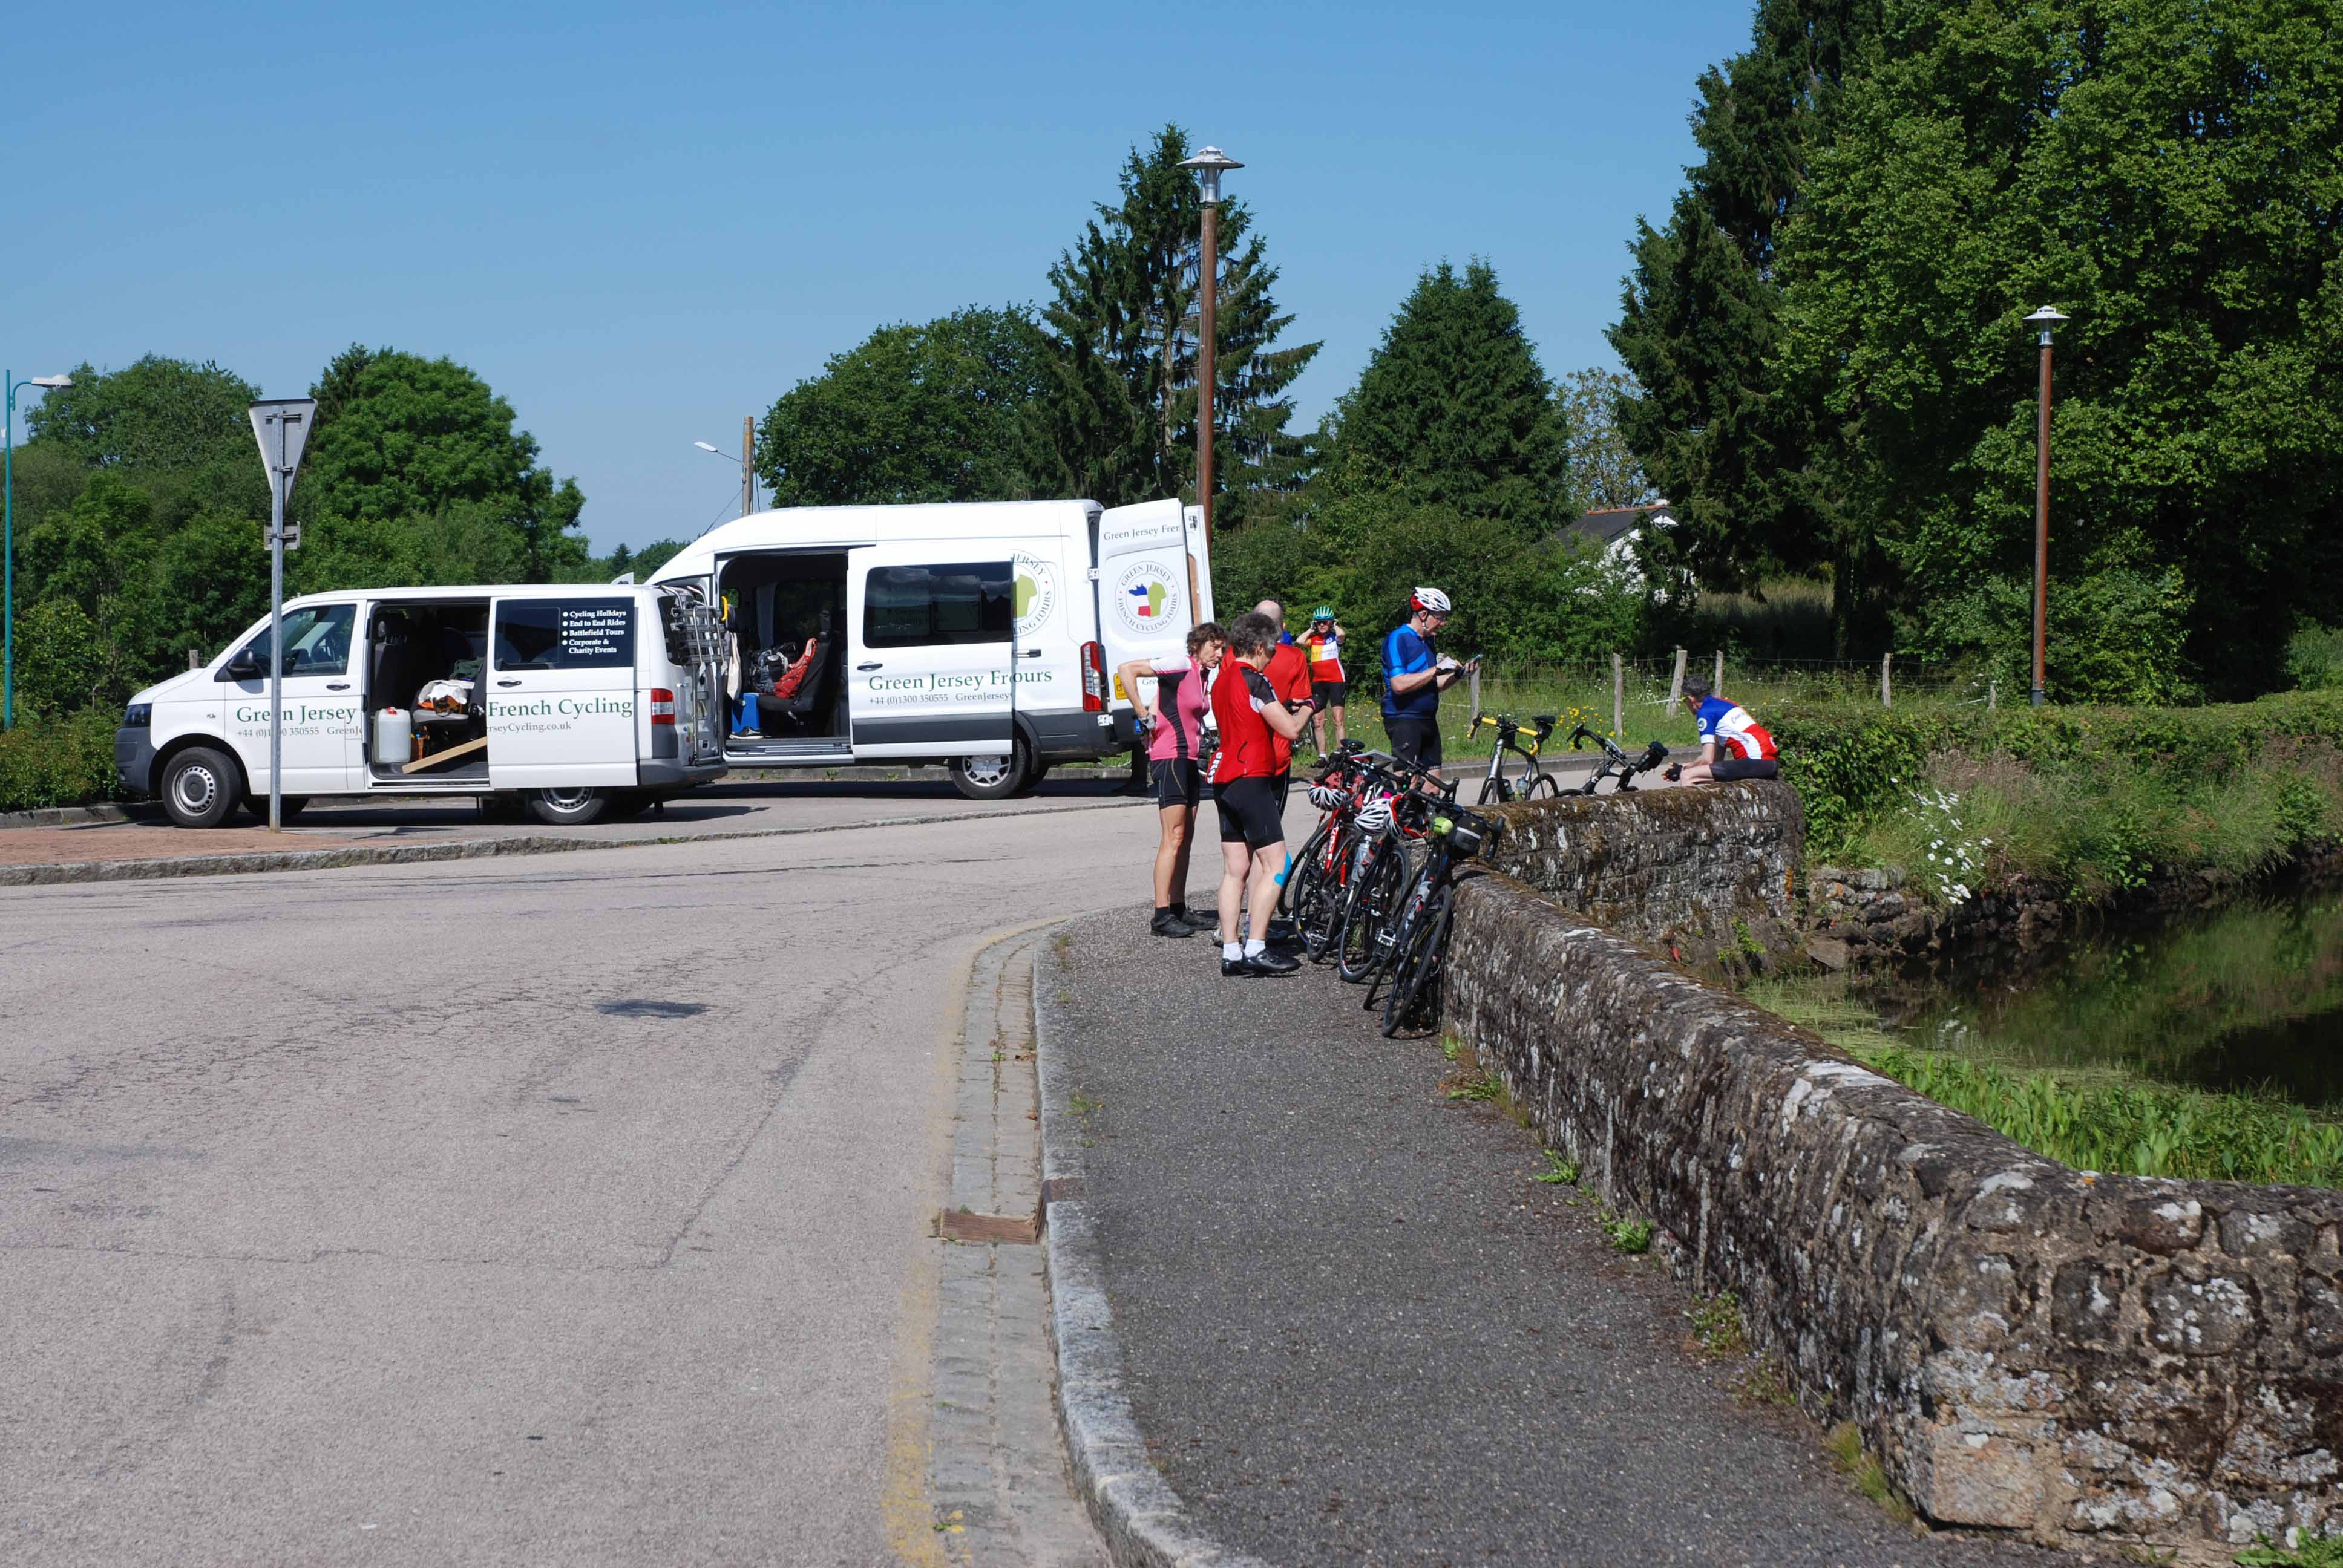 One of our coffee stops, keeping cyclists fed and watered!